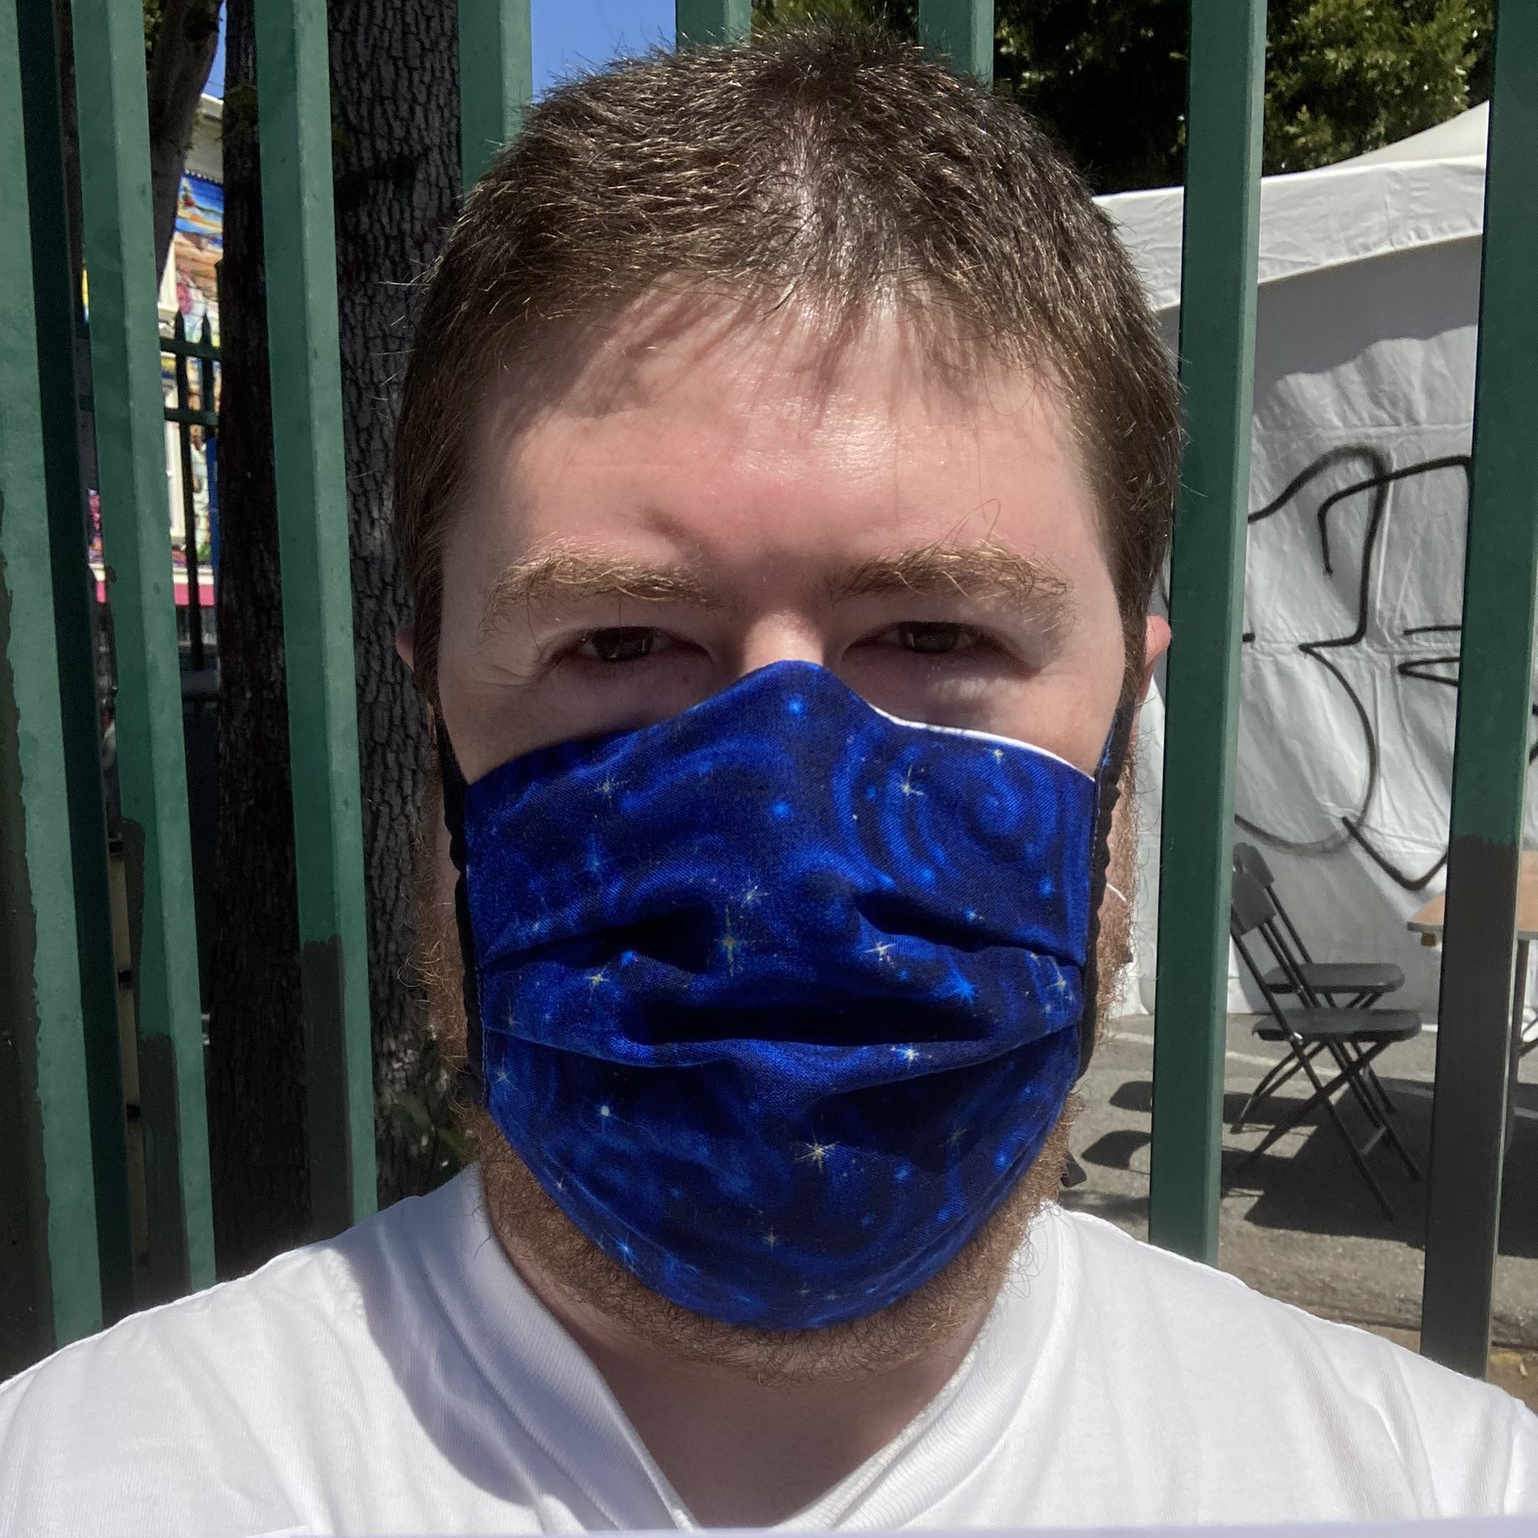 Me wearing a mask with stars printed on a blue outer-space pattern fabric.